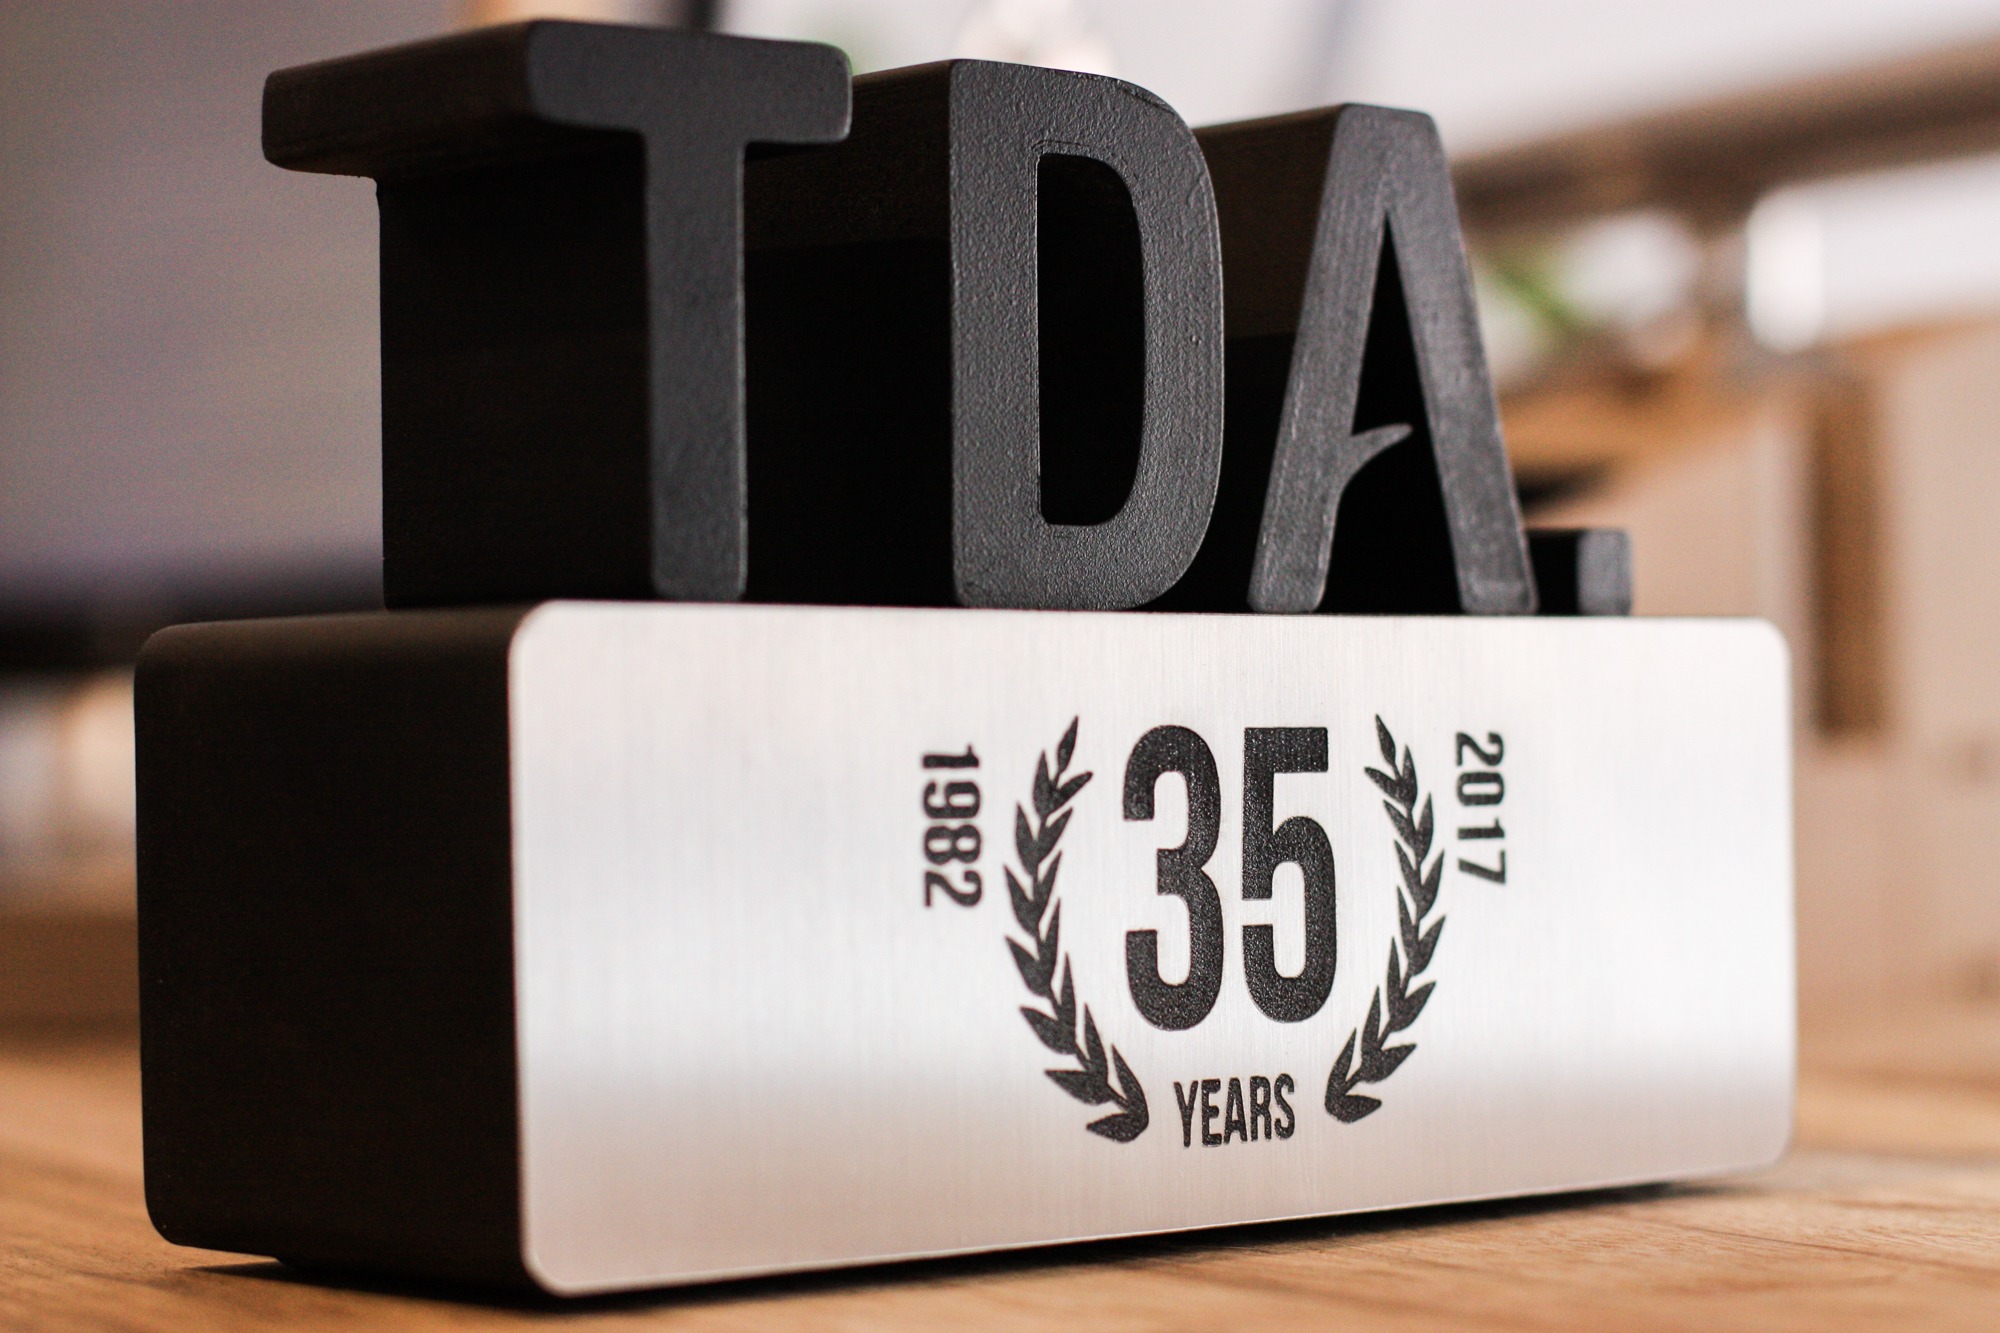 tda 3 The latest tweets from tda (@tdaeducation) tda, peterborough's flagship academy, is one of the largest in the country and occupies a £50 million state-of-the-art building within a 43 acre gated campus.